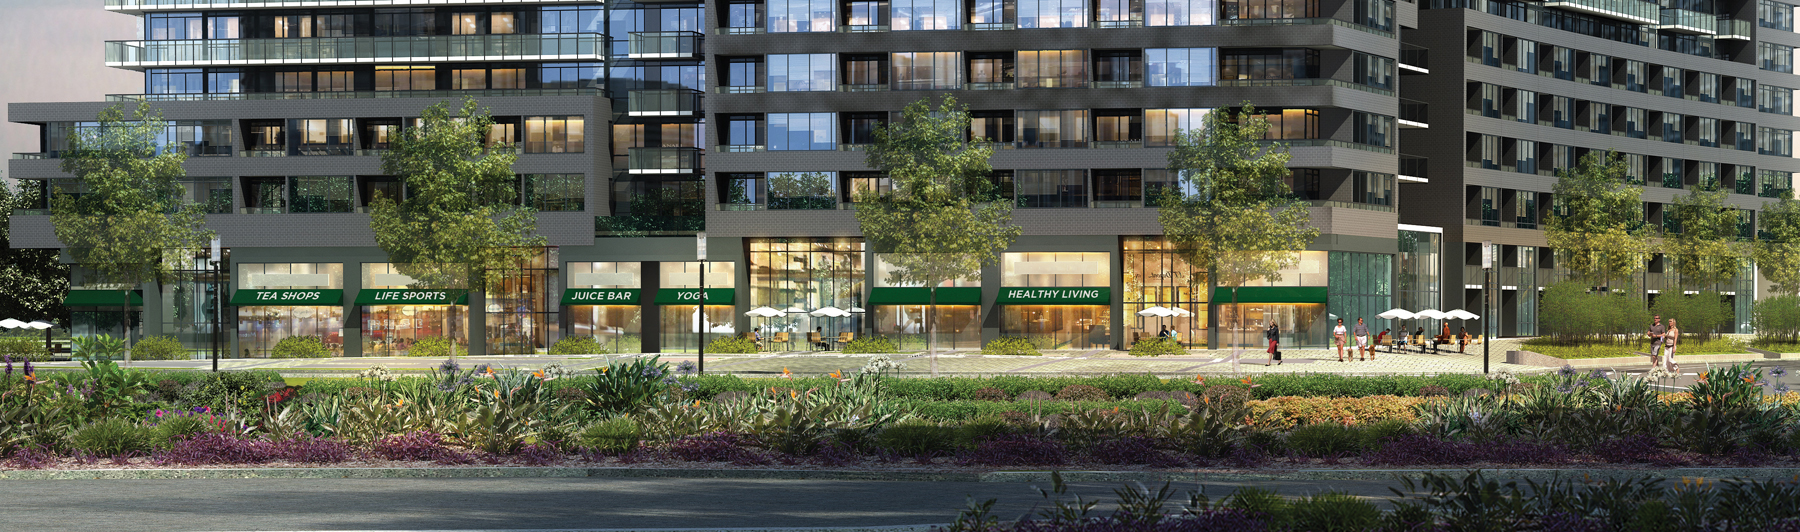 Canary District Retail Health and Wellness Focused Image